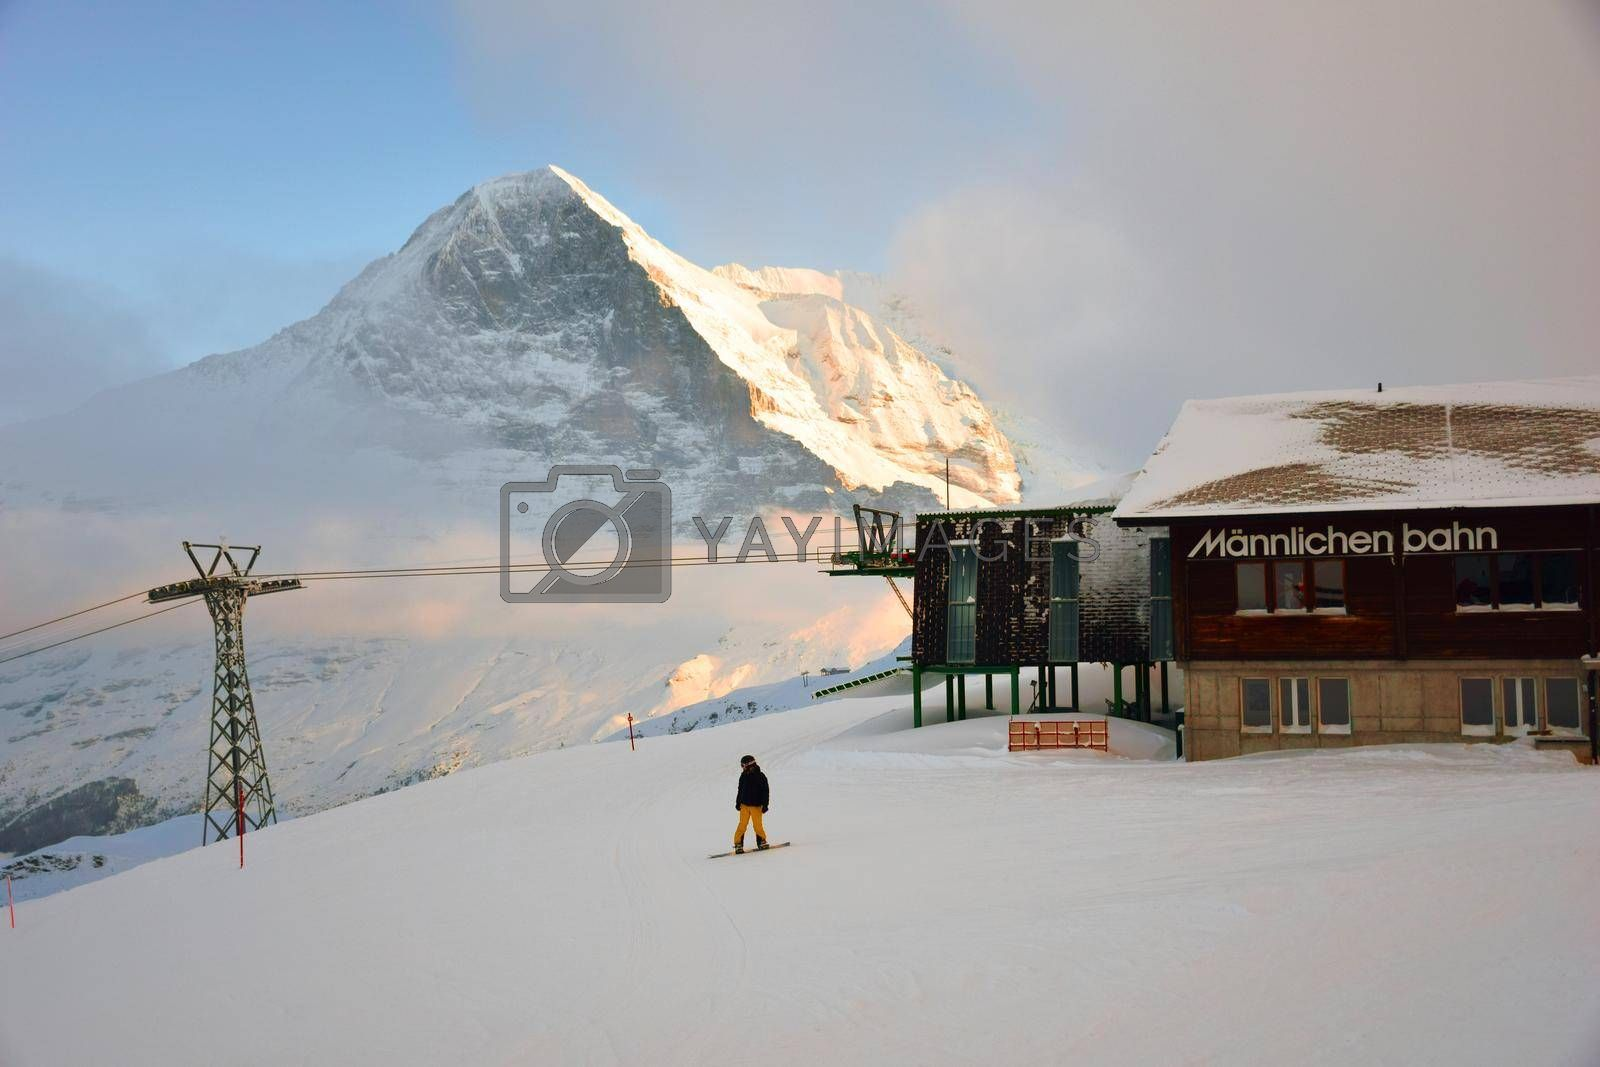 view of the Mannlichen cable car station North slope of the Eiger in winter, Grindelwald, Bernese Oberland, Switzerland